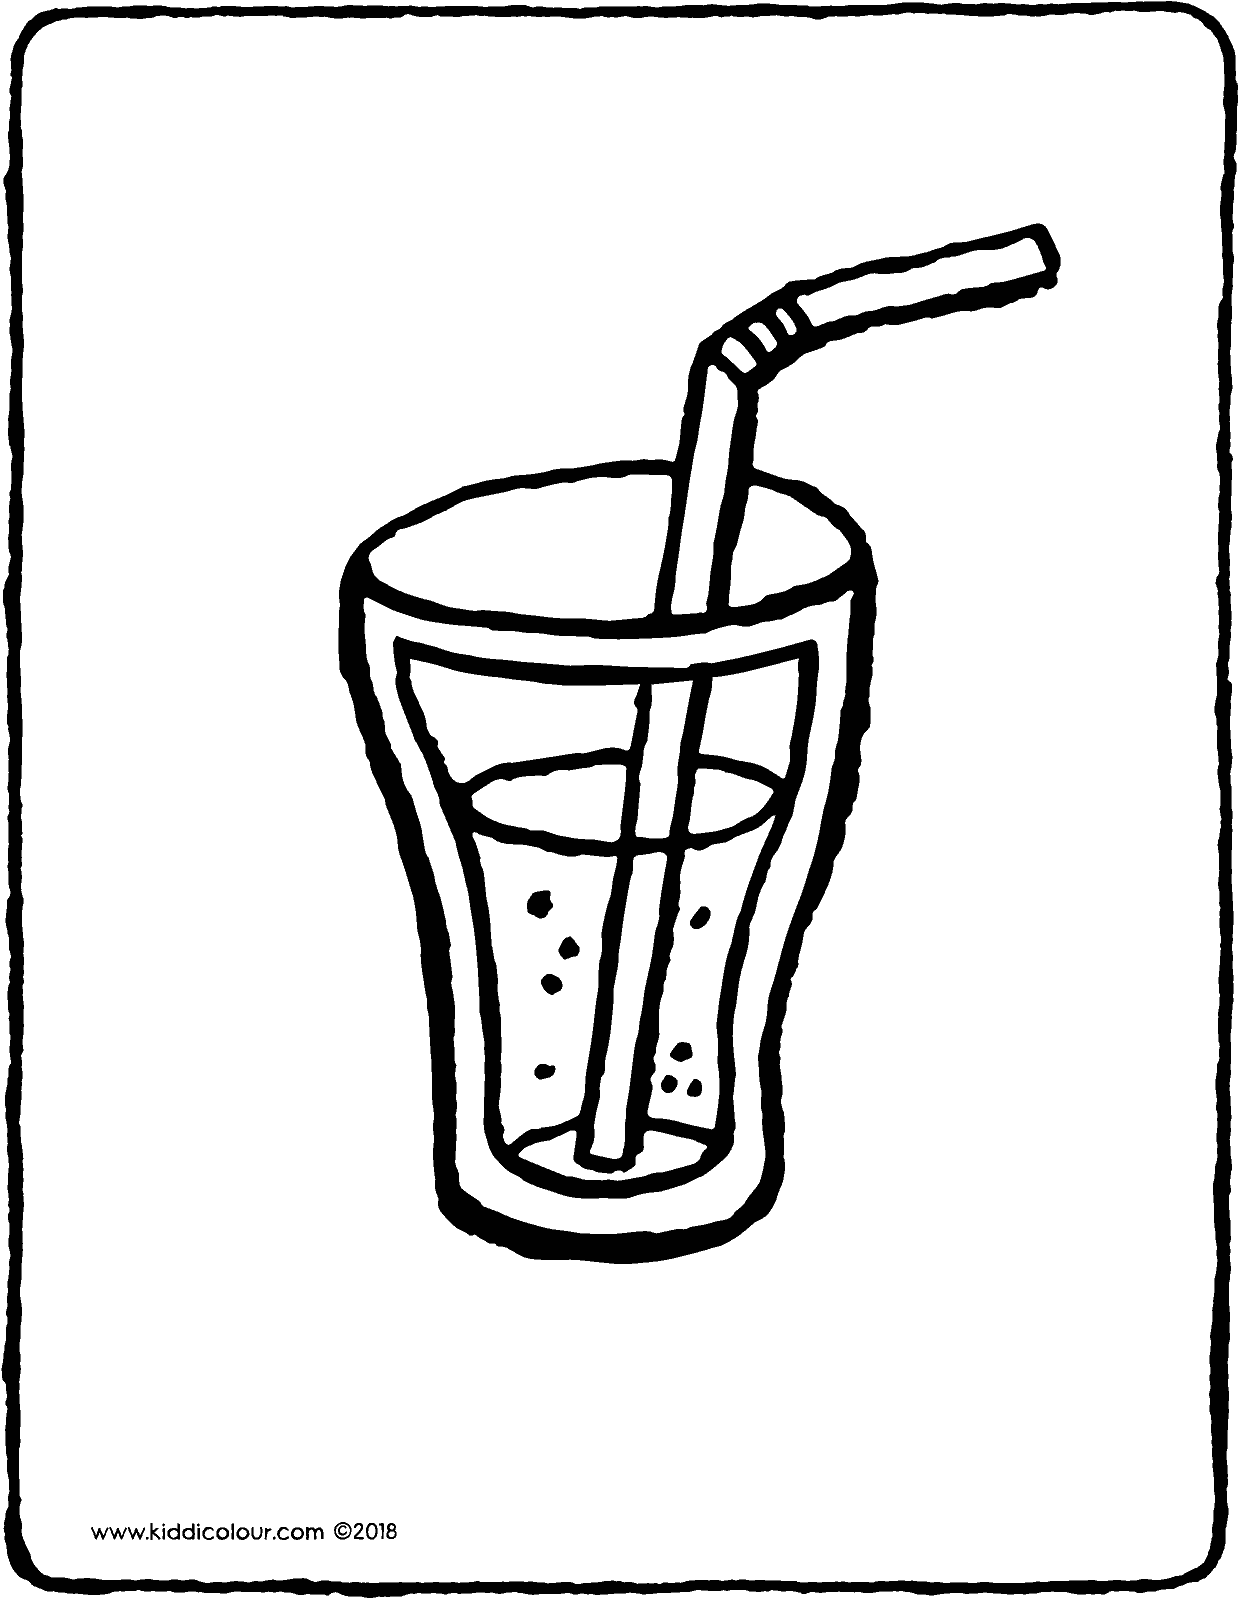 glass of lemonade with a straw colouring page drawing picture 01V